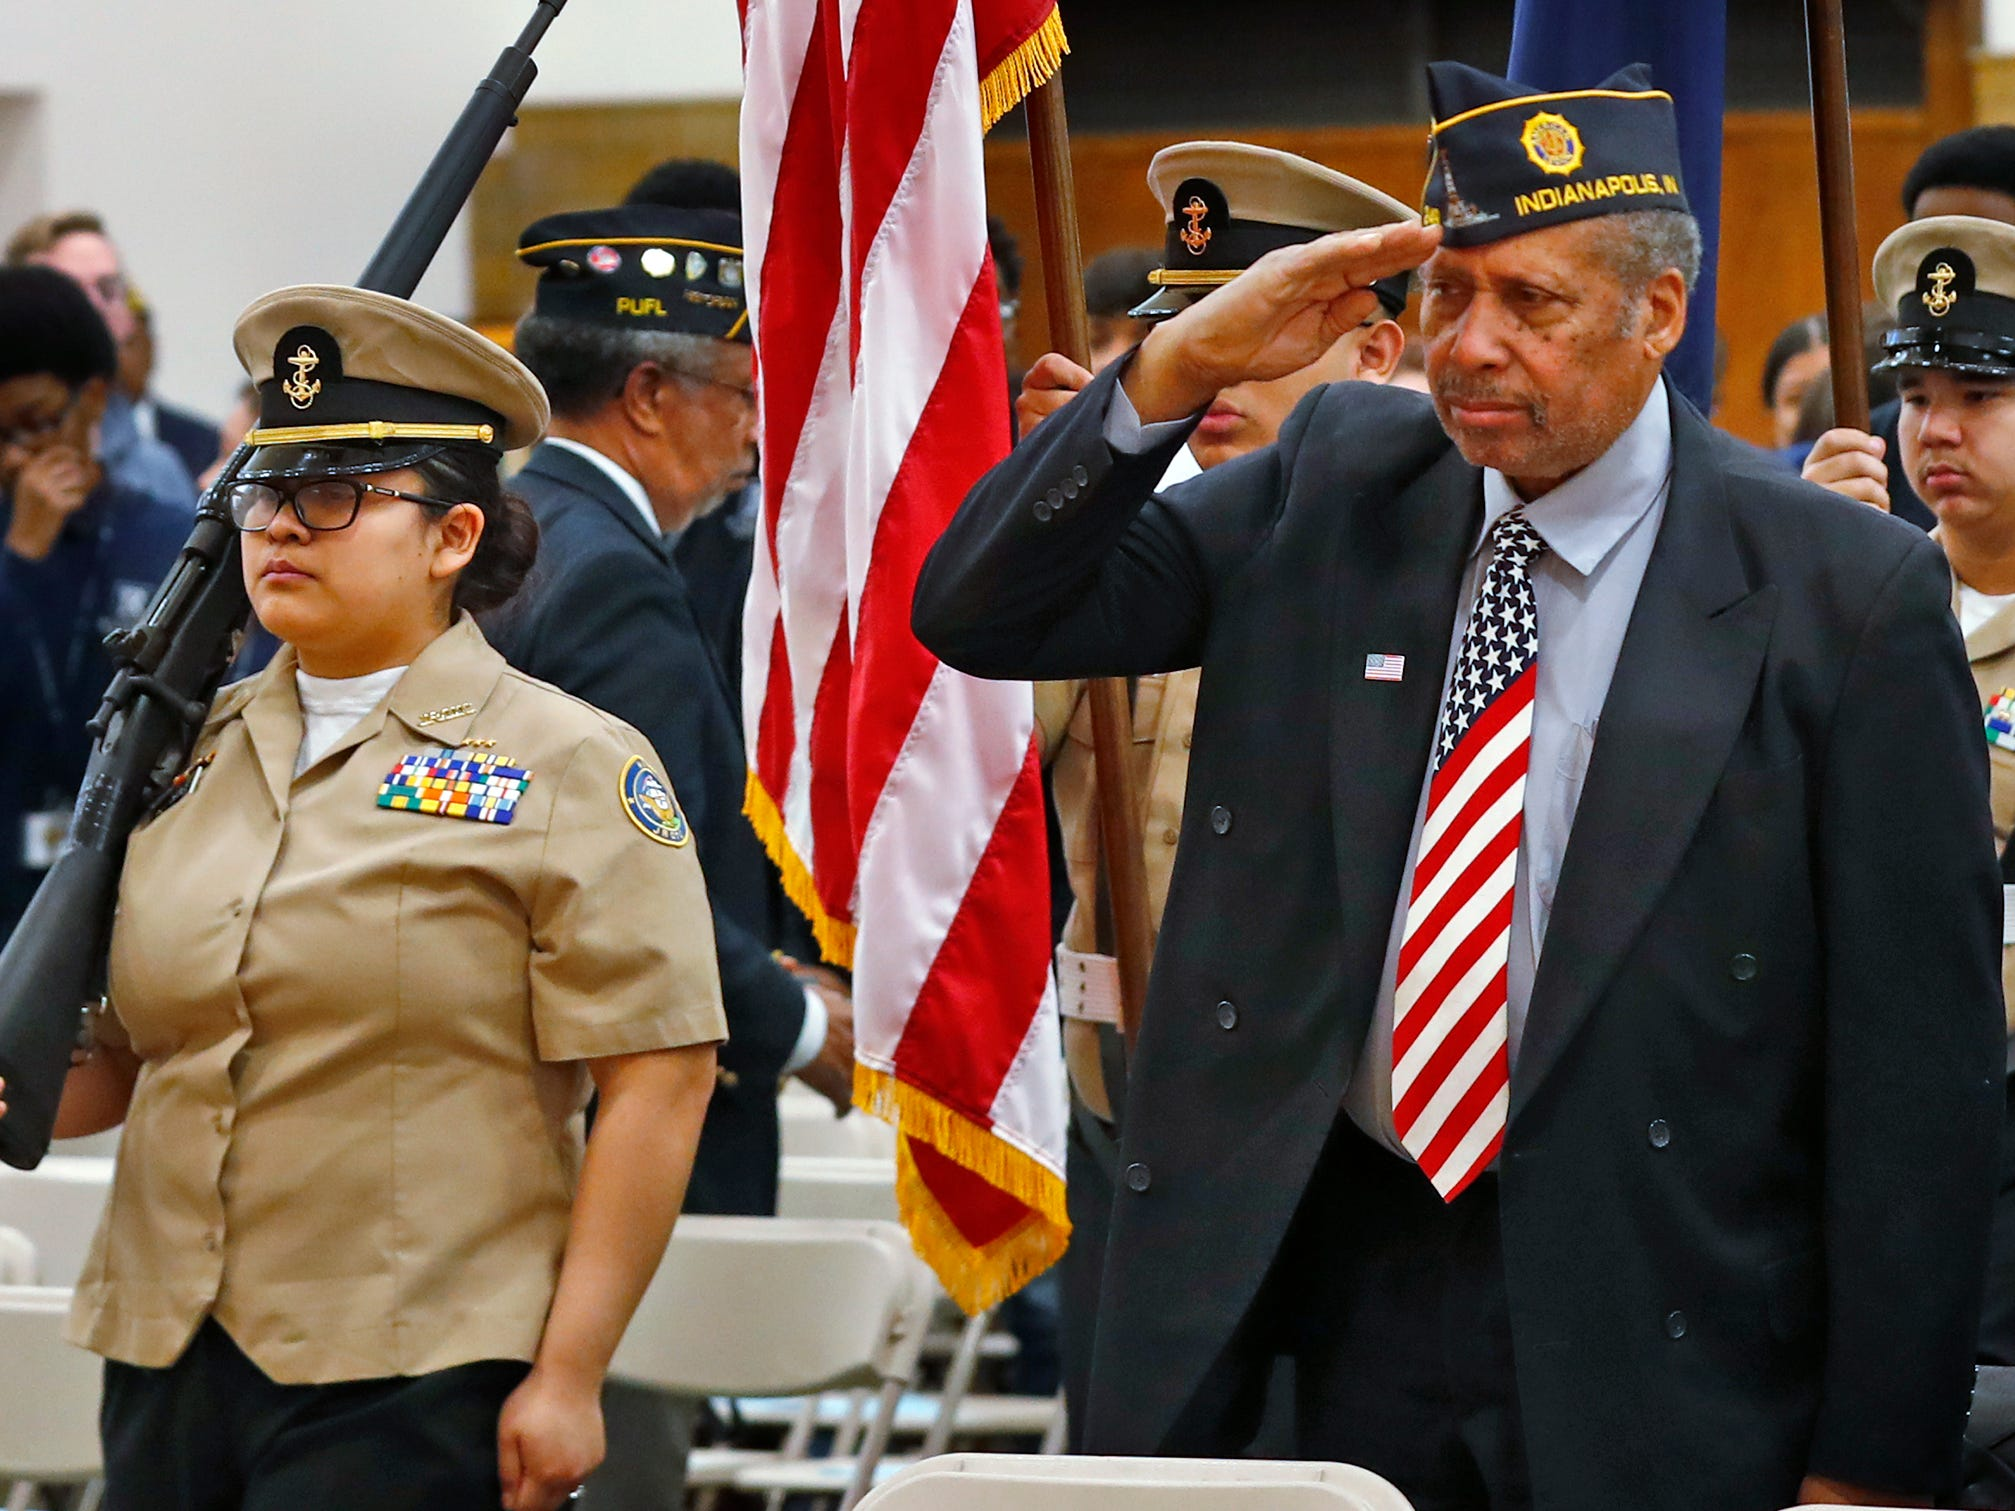 American Legion members salute as the colors are posted by the Pike High School's Junior Reserve Officer Training Corps Color Guard, during the Pearl Harbor Day Remembrance at Riverside High School, Friday, Dec. 7, 2018.  The former Heslar Naval Armory used to host the event to remember those who died and to honor those who survived in the Dec. 7, 1941 Japanese attack on Pearl Harbor which plunged the United States into World War II.